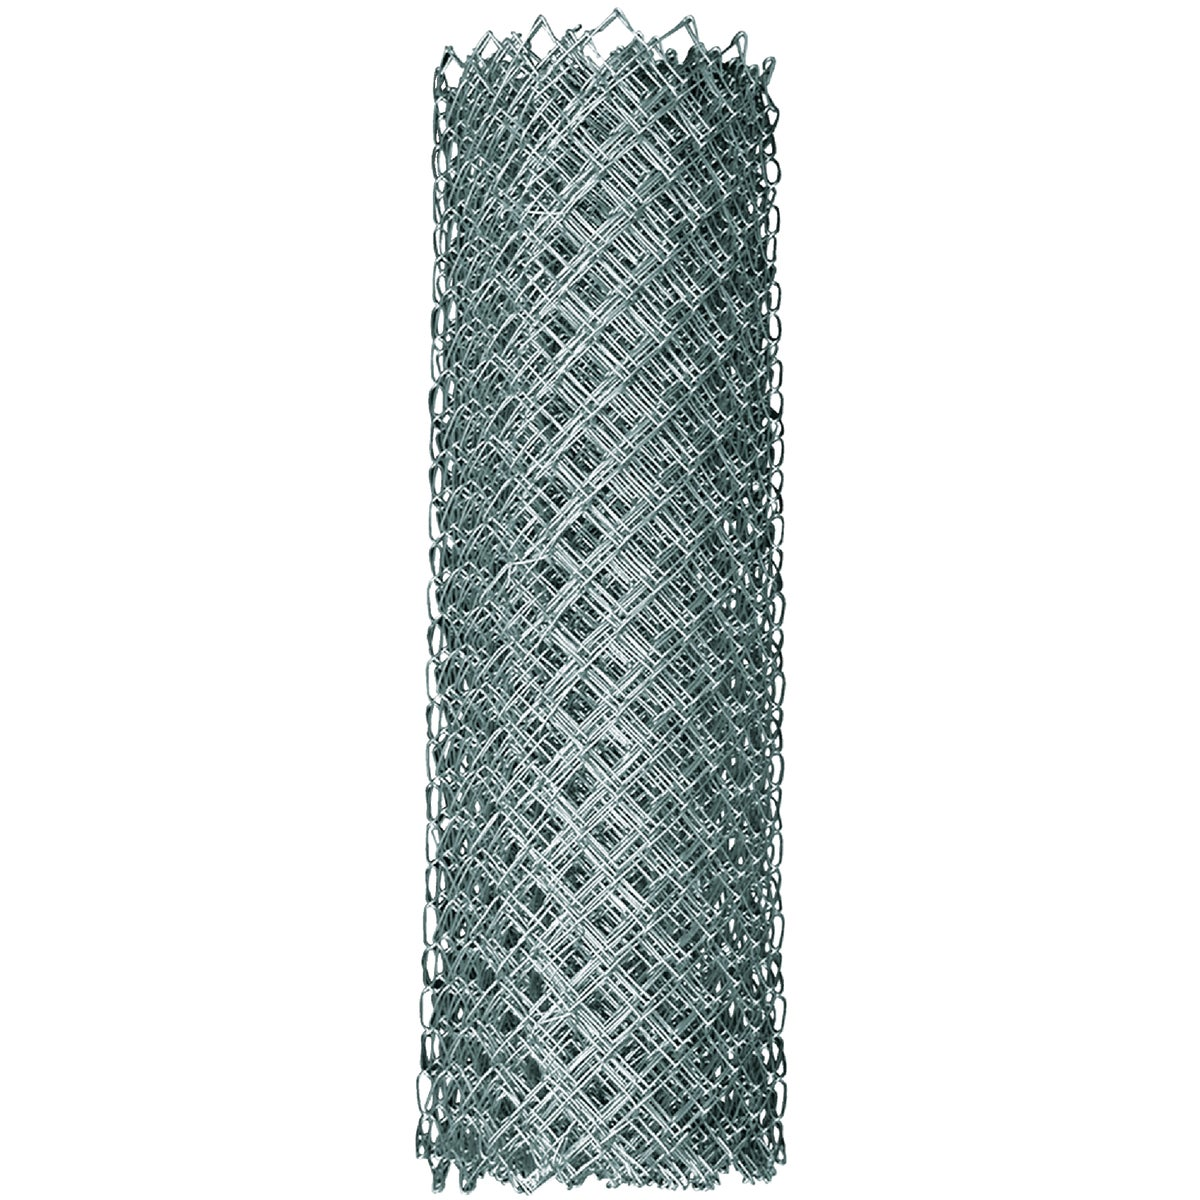 11-1/2GA 6X50'CHAIN LINK - 308706A by Midwest Air Tech